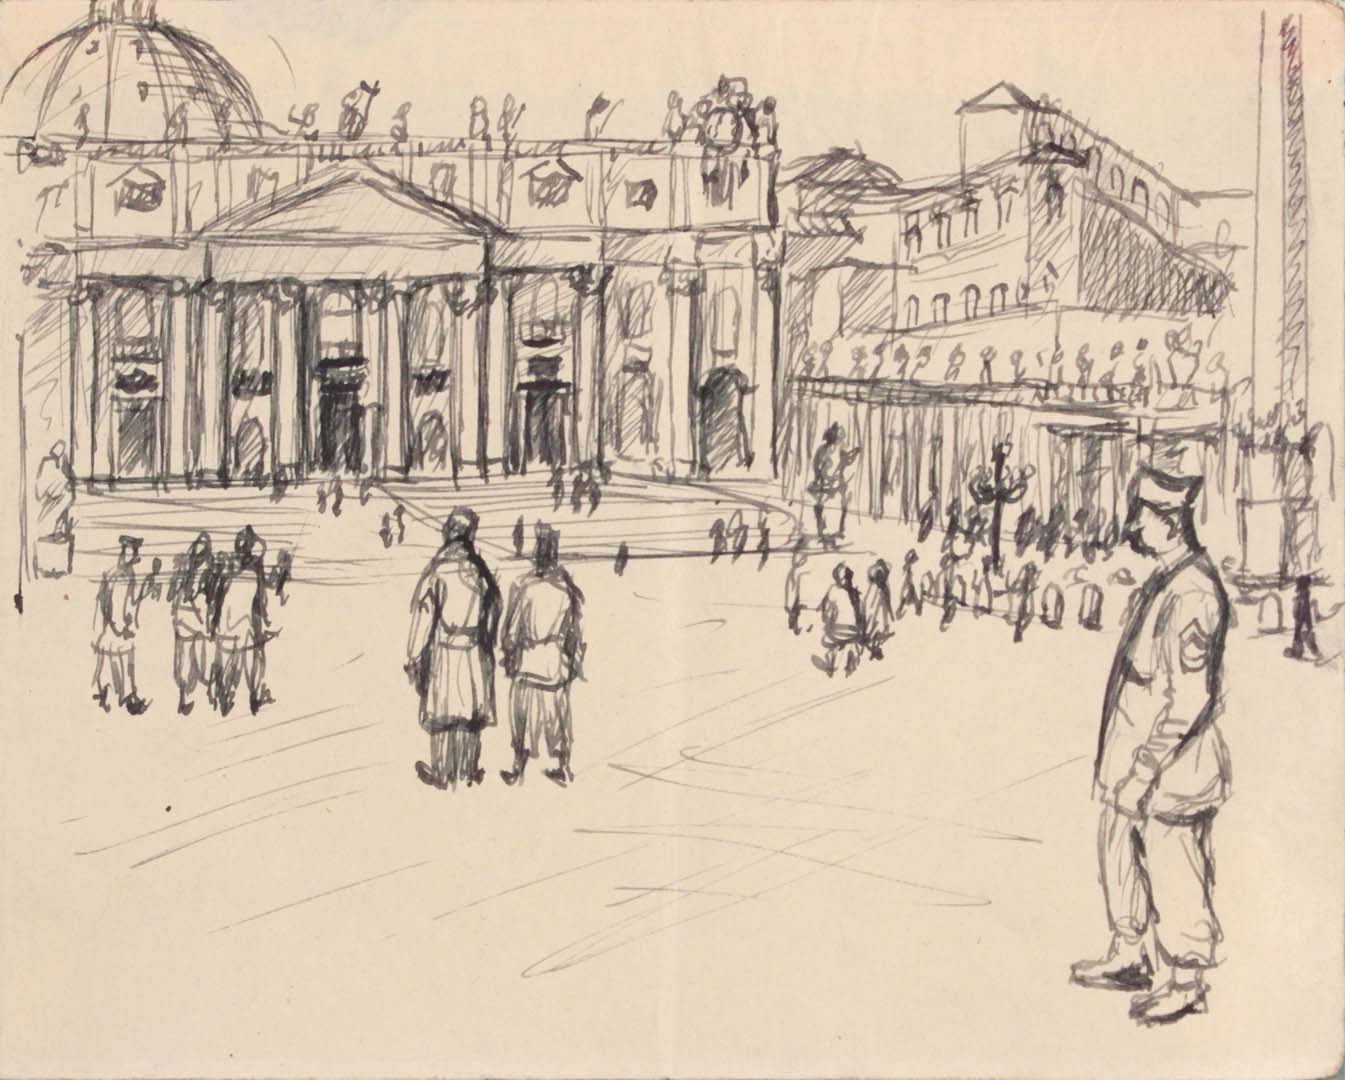 """1944 Rome Italy XI Pen and Ink on Paper 4.8125"""" x 6.0625"""""""